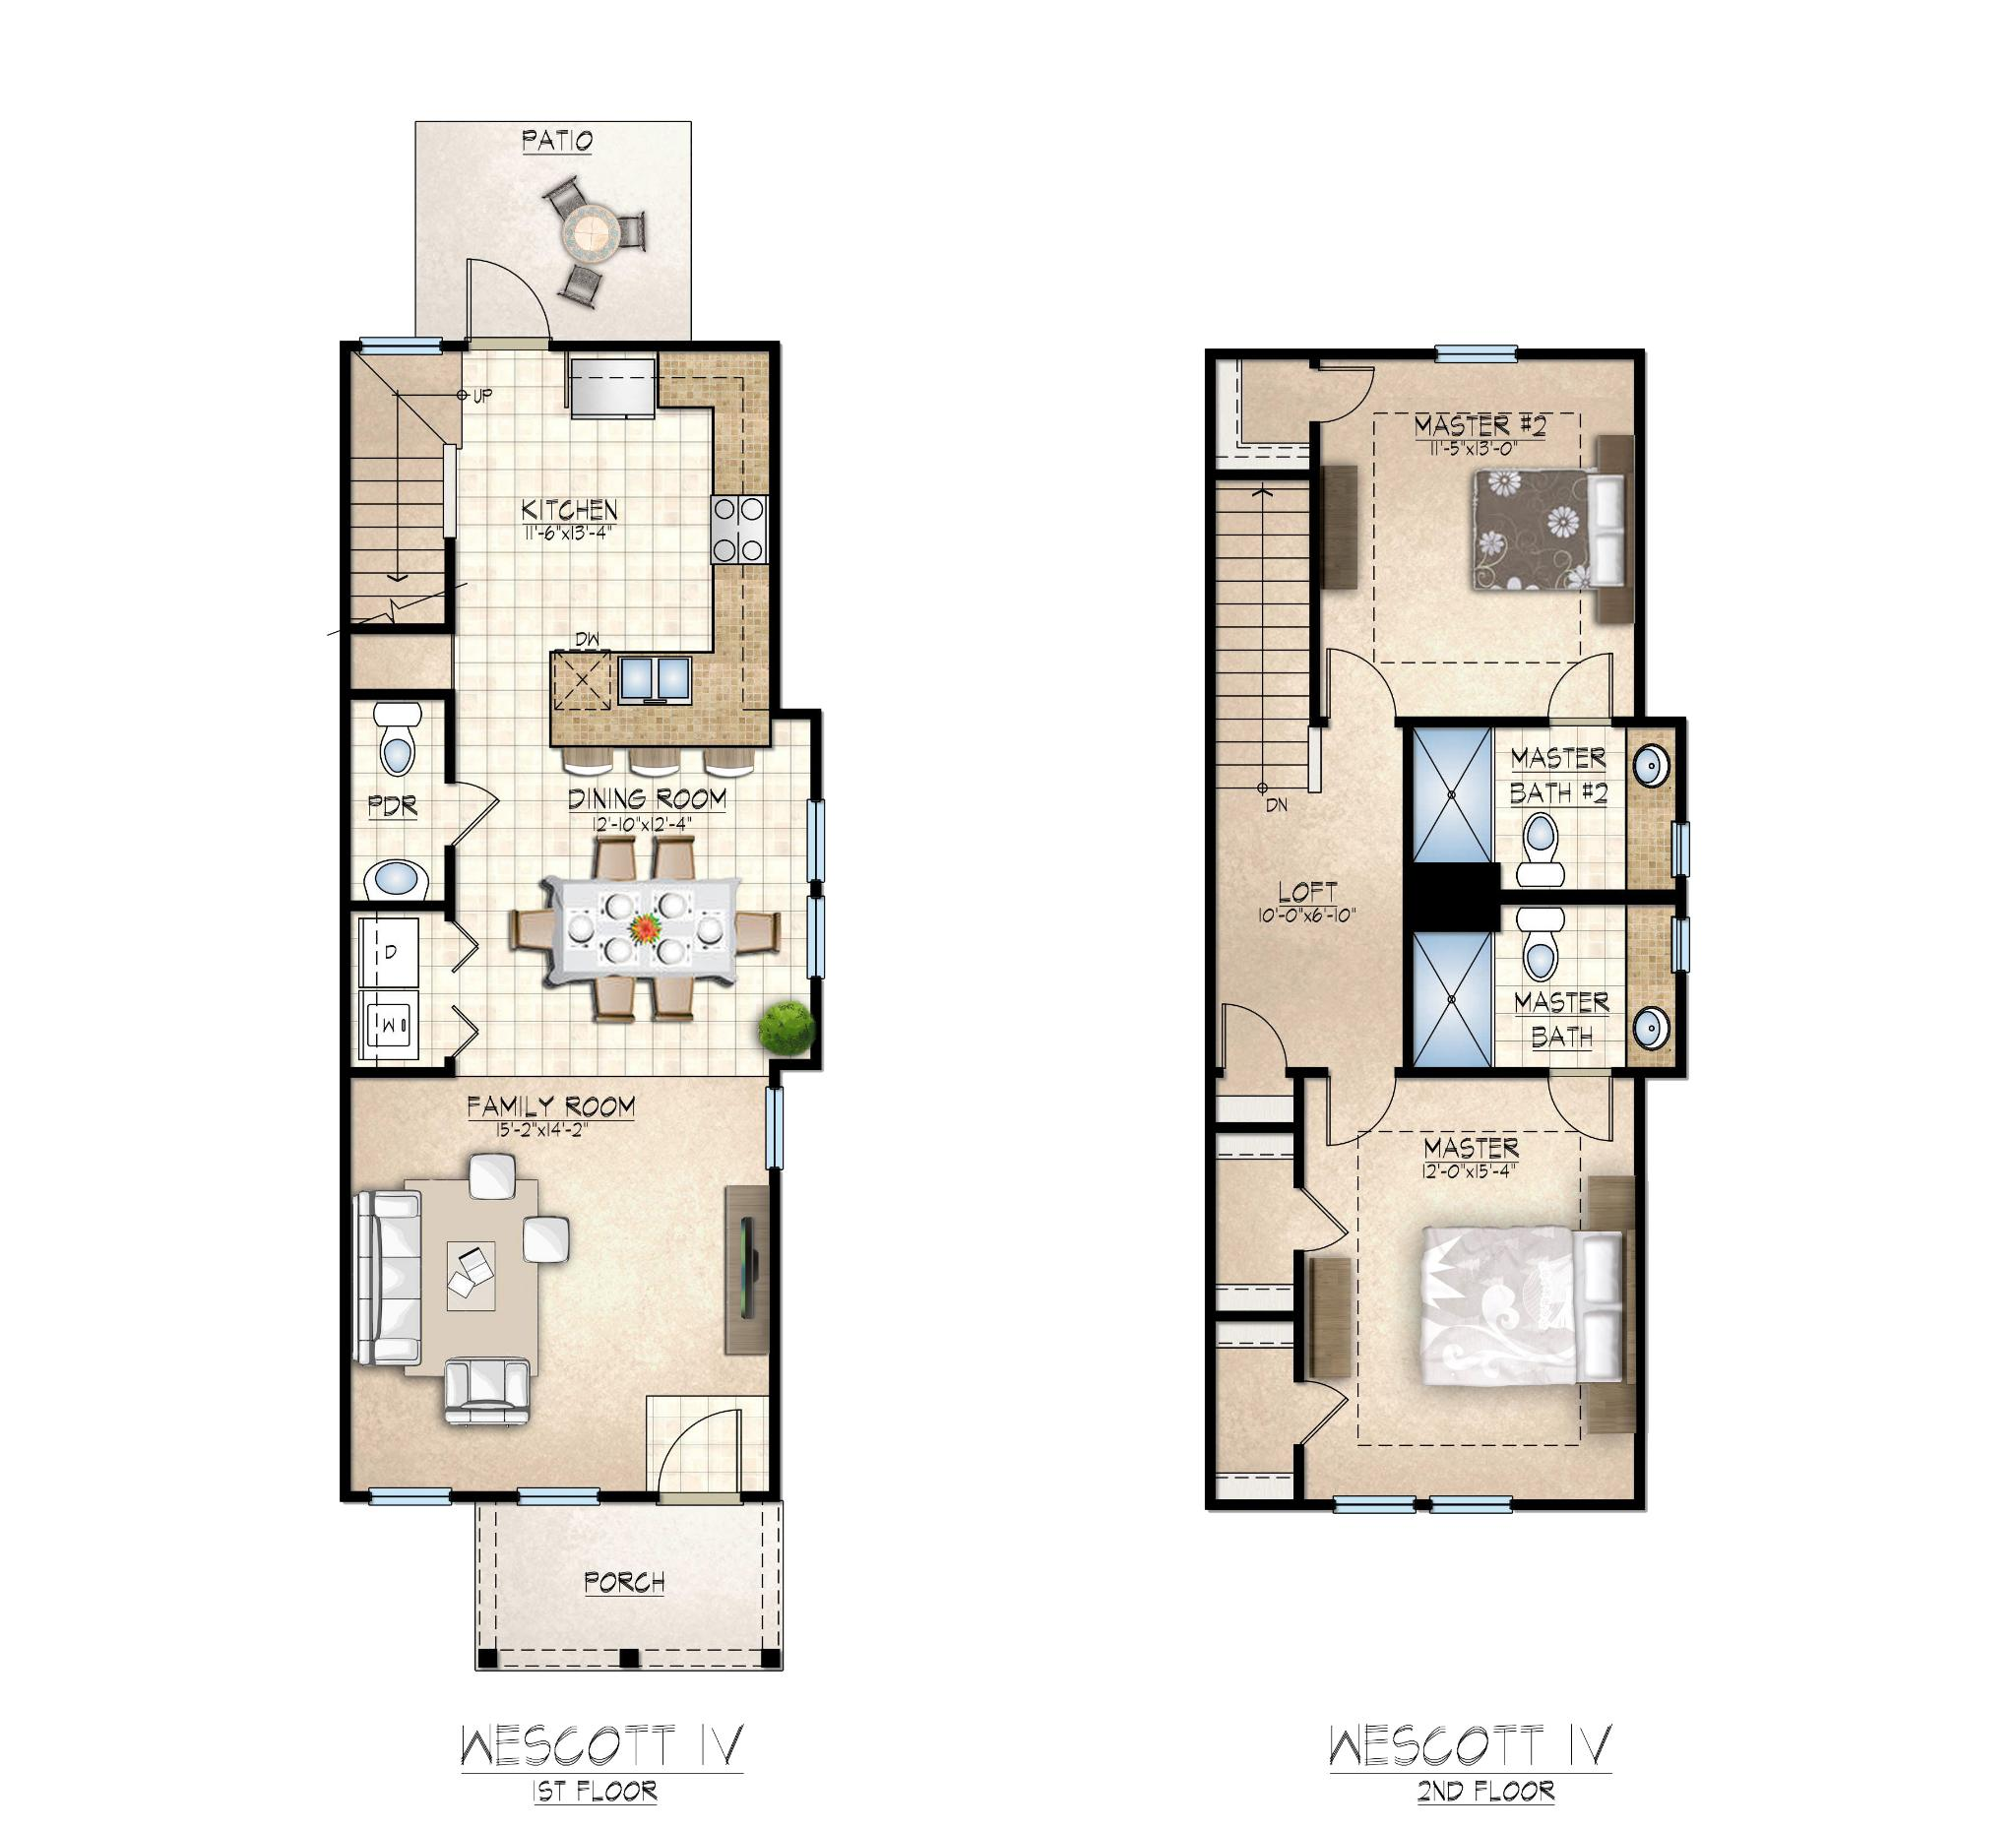 Wescott IV Floor Plan